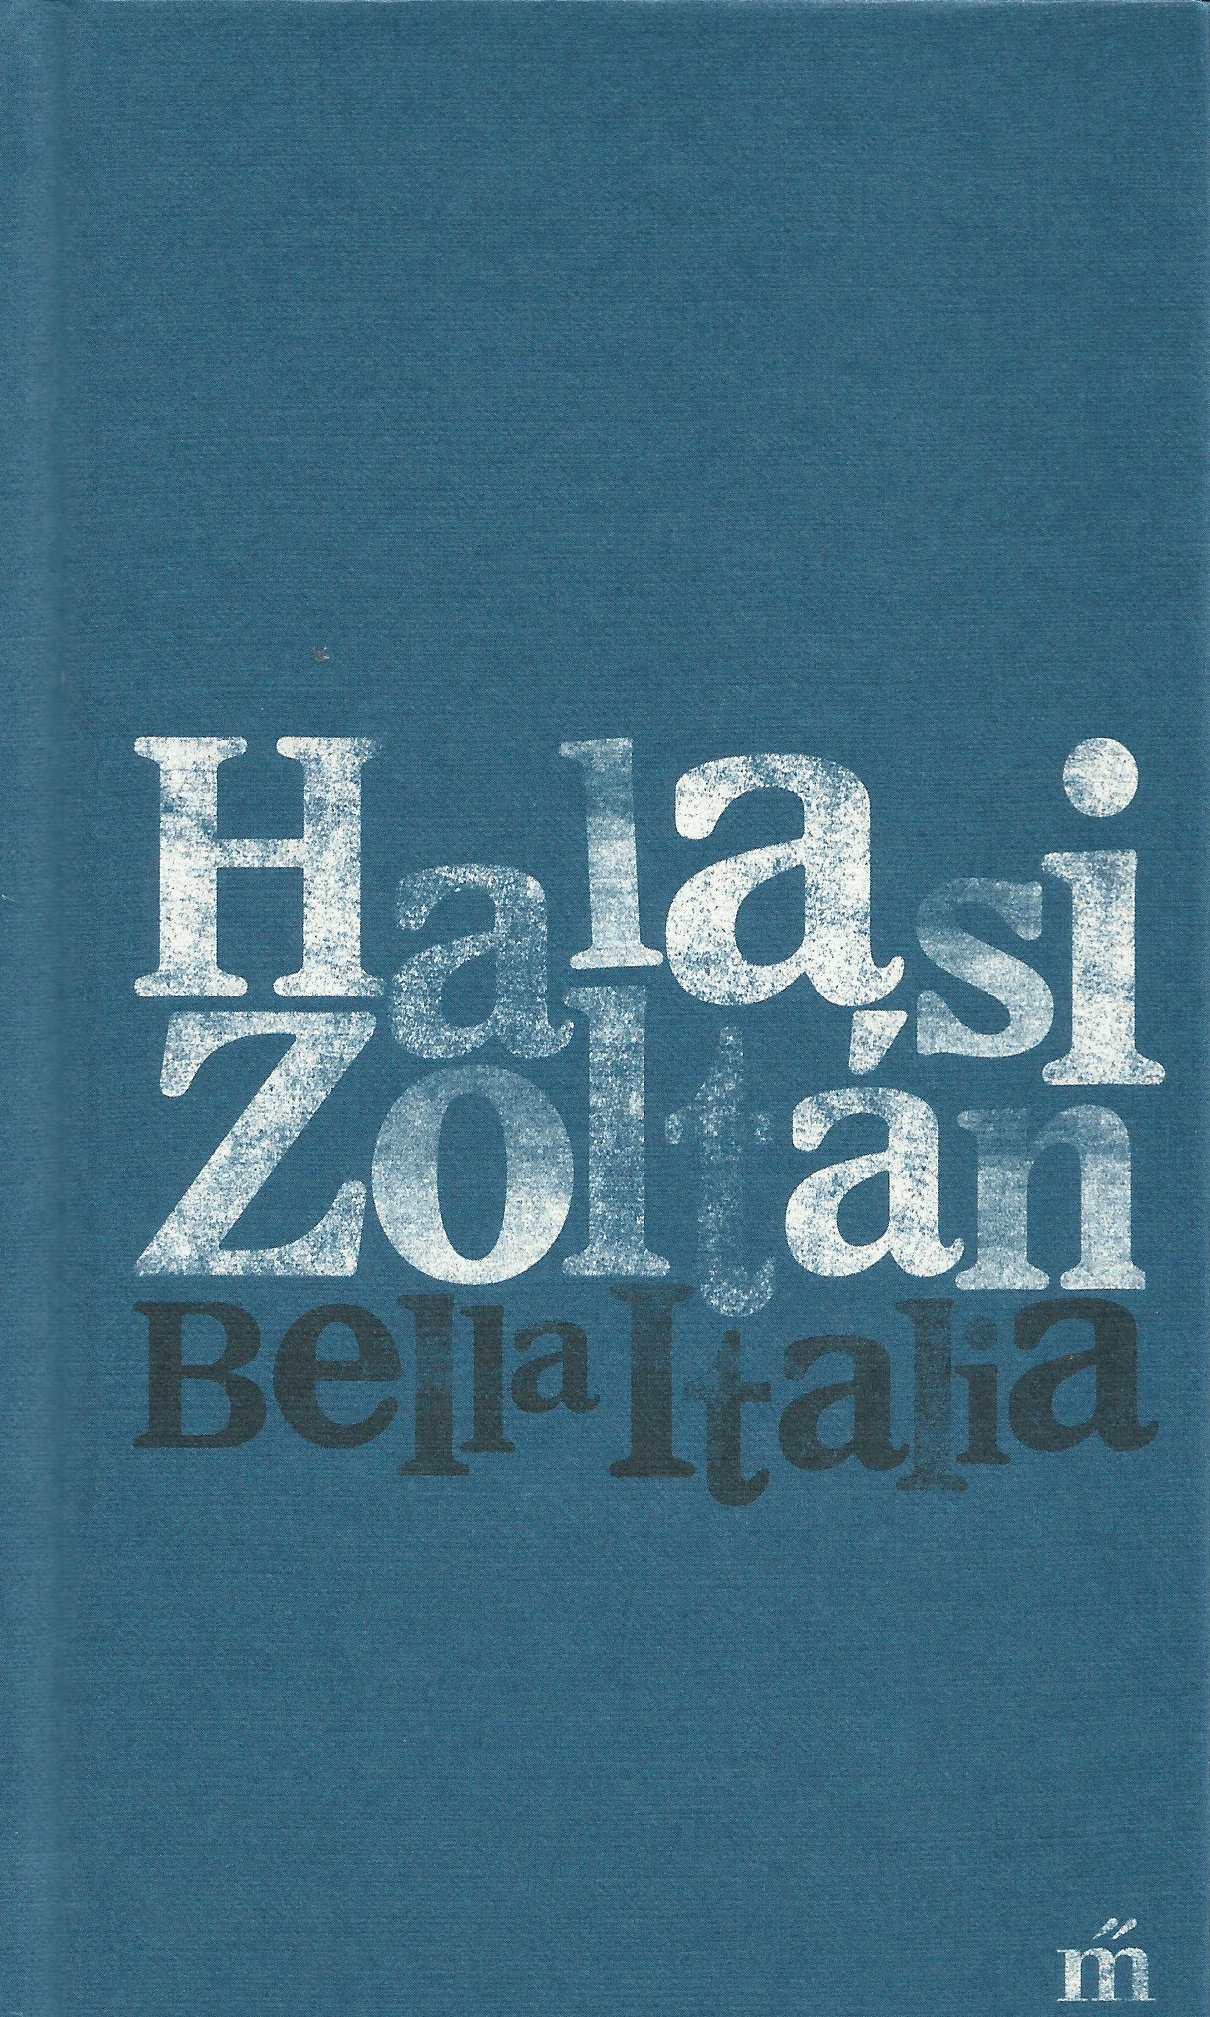 hz bella scan